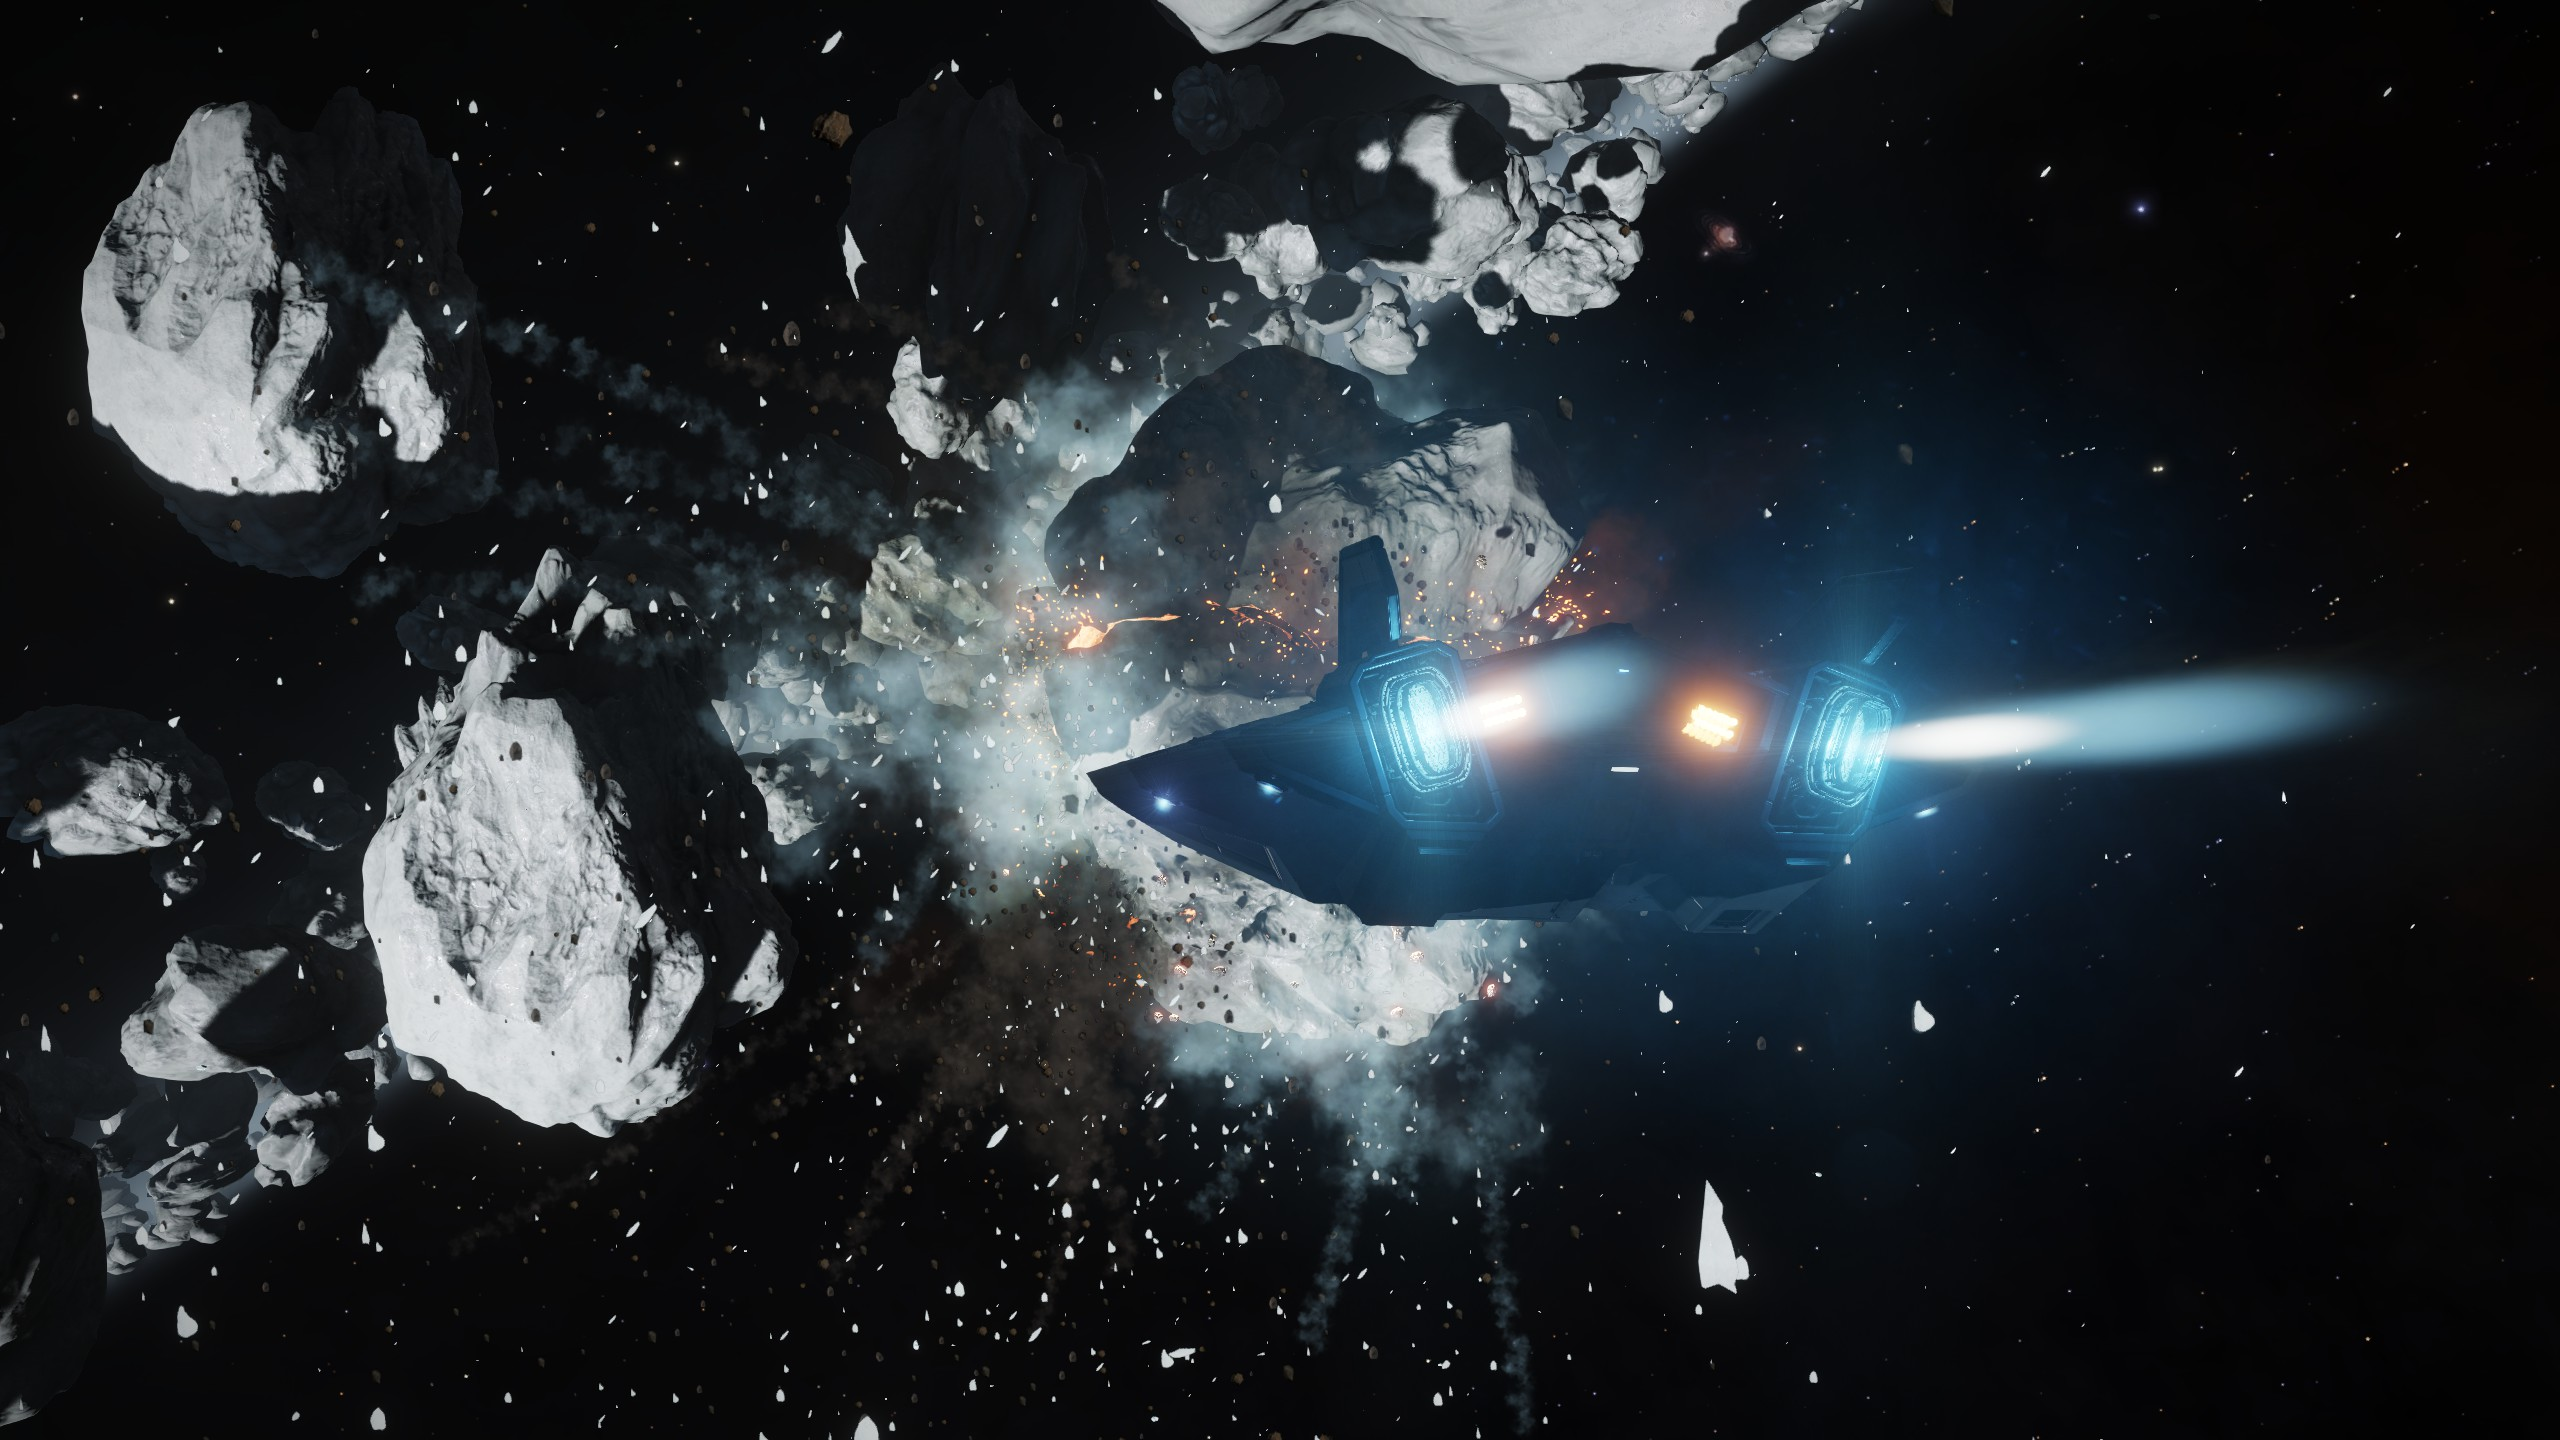 Elite: Dangerous Kickstarter Launched - Games - Quarter To